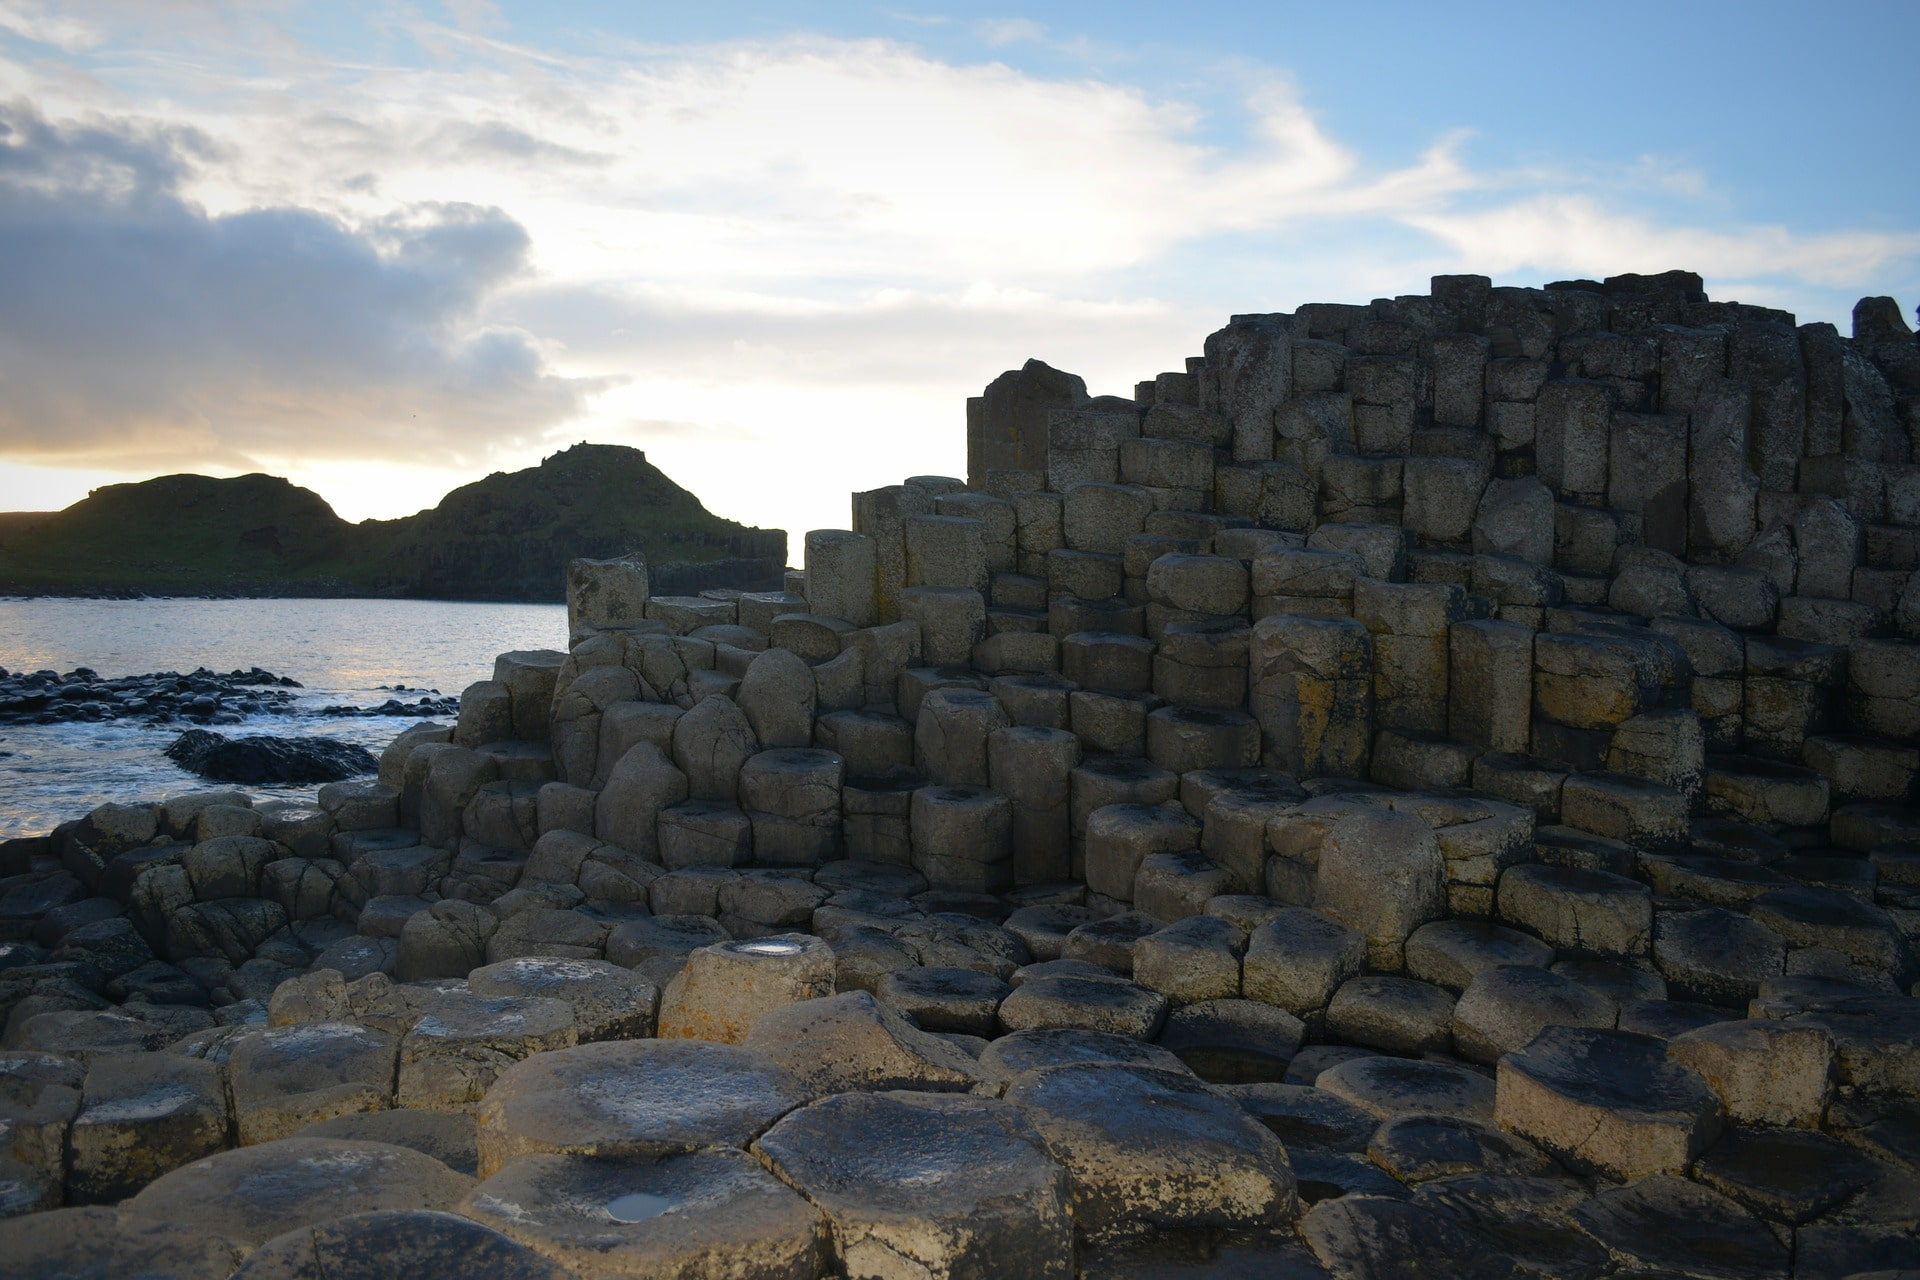 Exploring Giant's Causeway is an awesome thing to do in Belfast Ireland